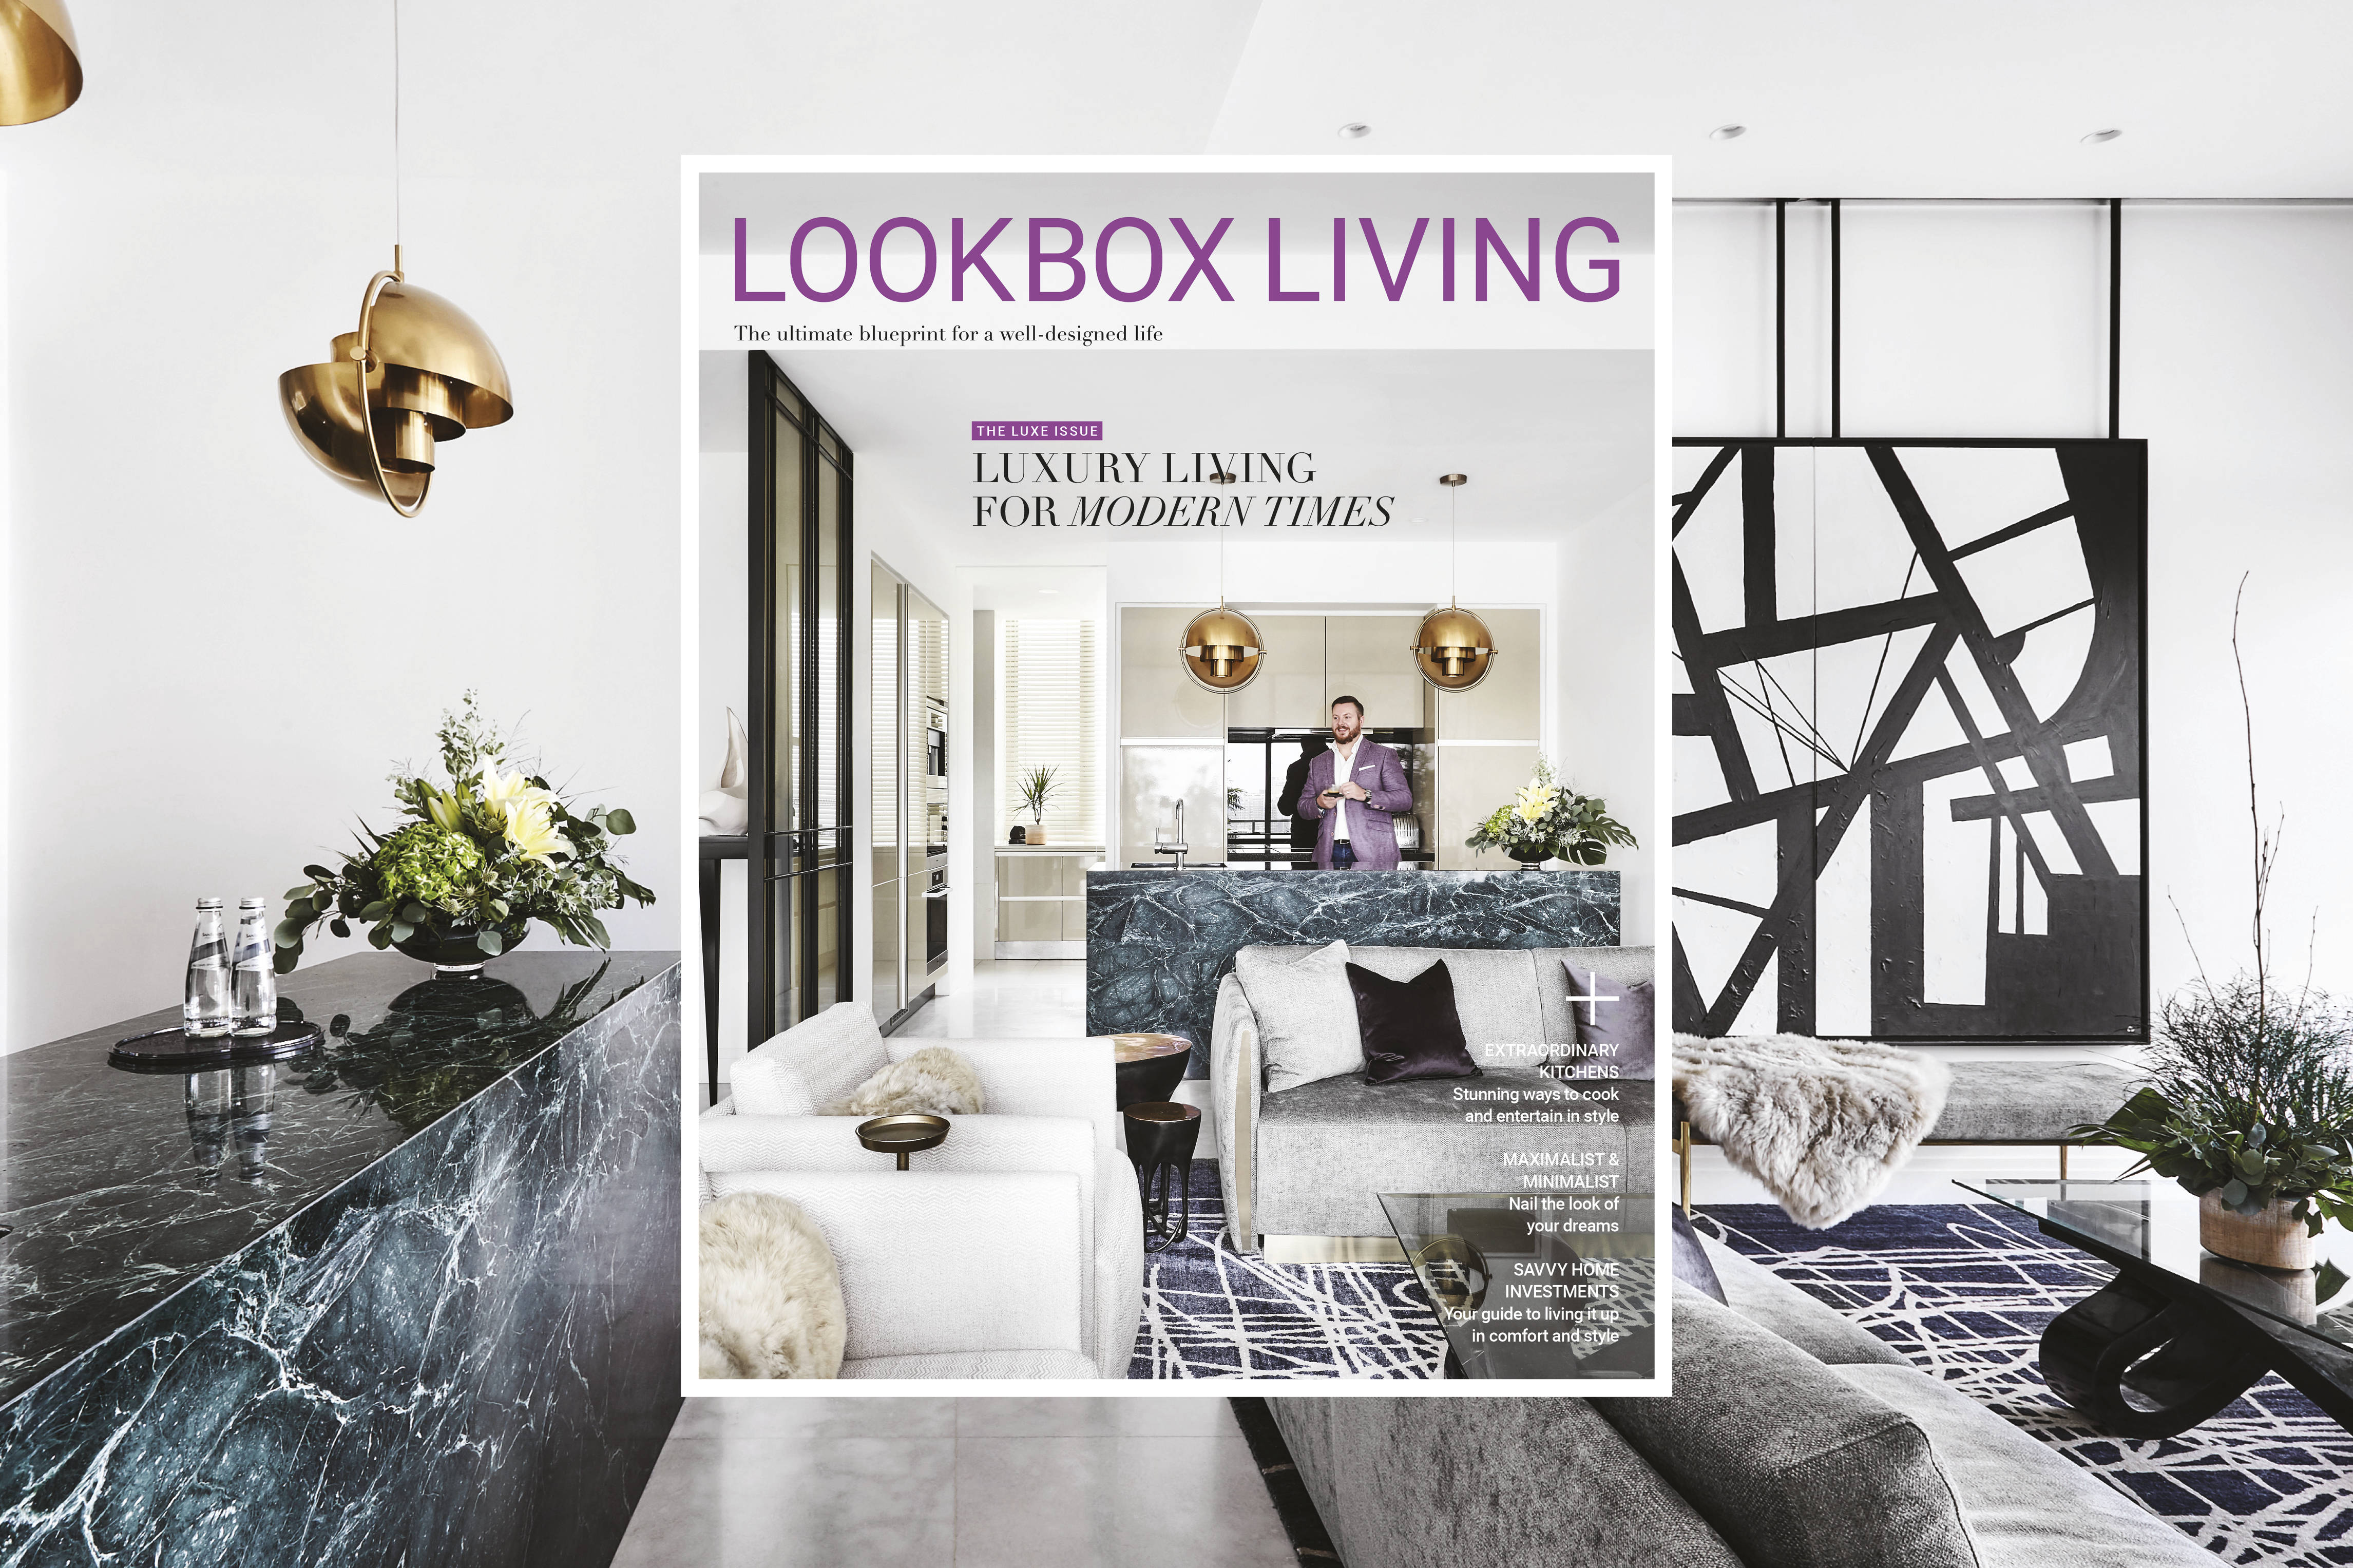 Lookbox Living 61 luxury theme issue